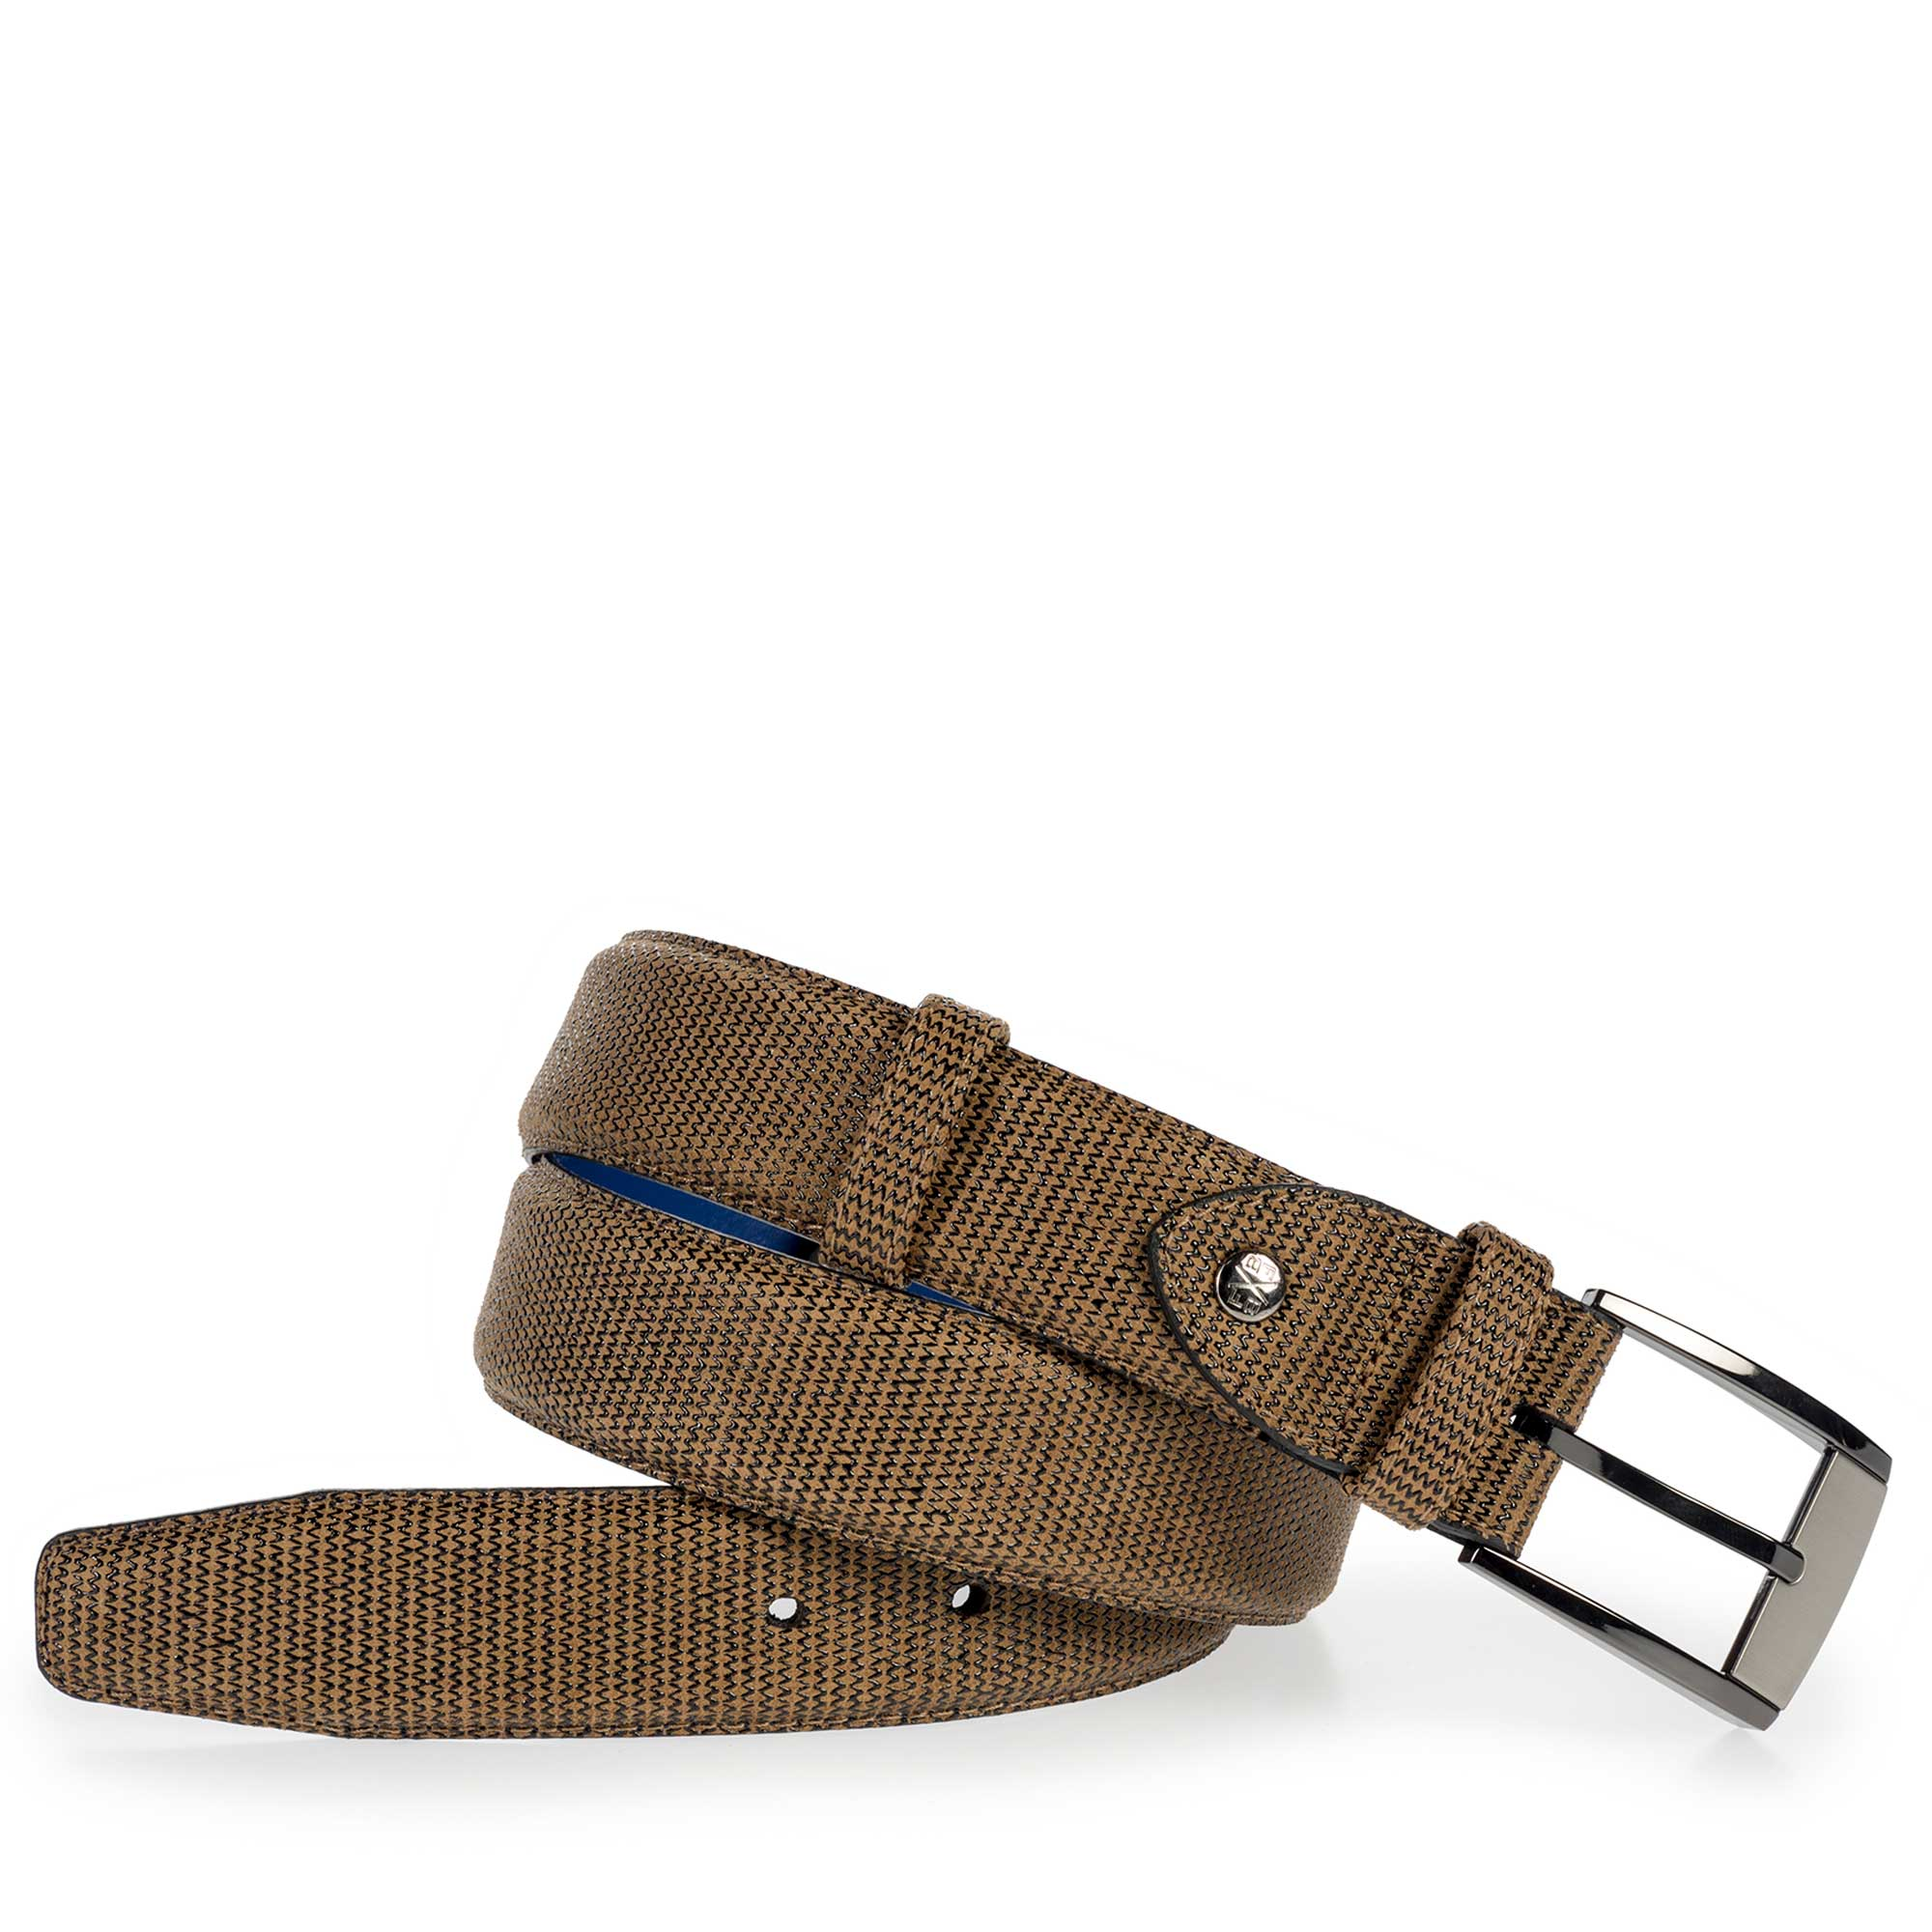 75180/20 - Brown suede leather belt